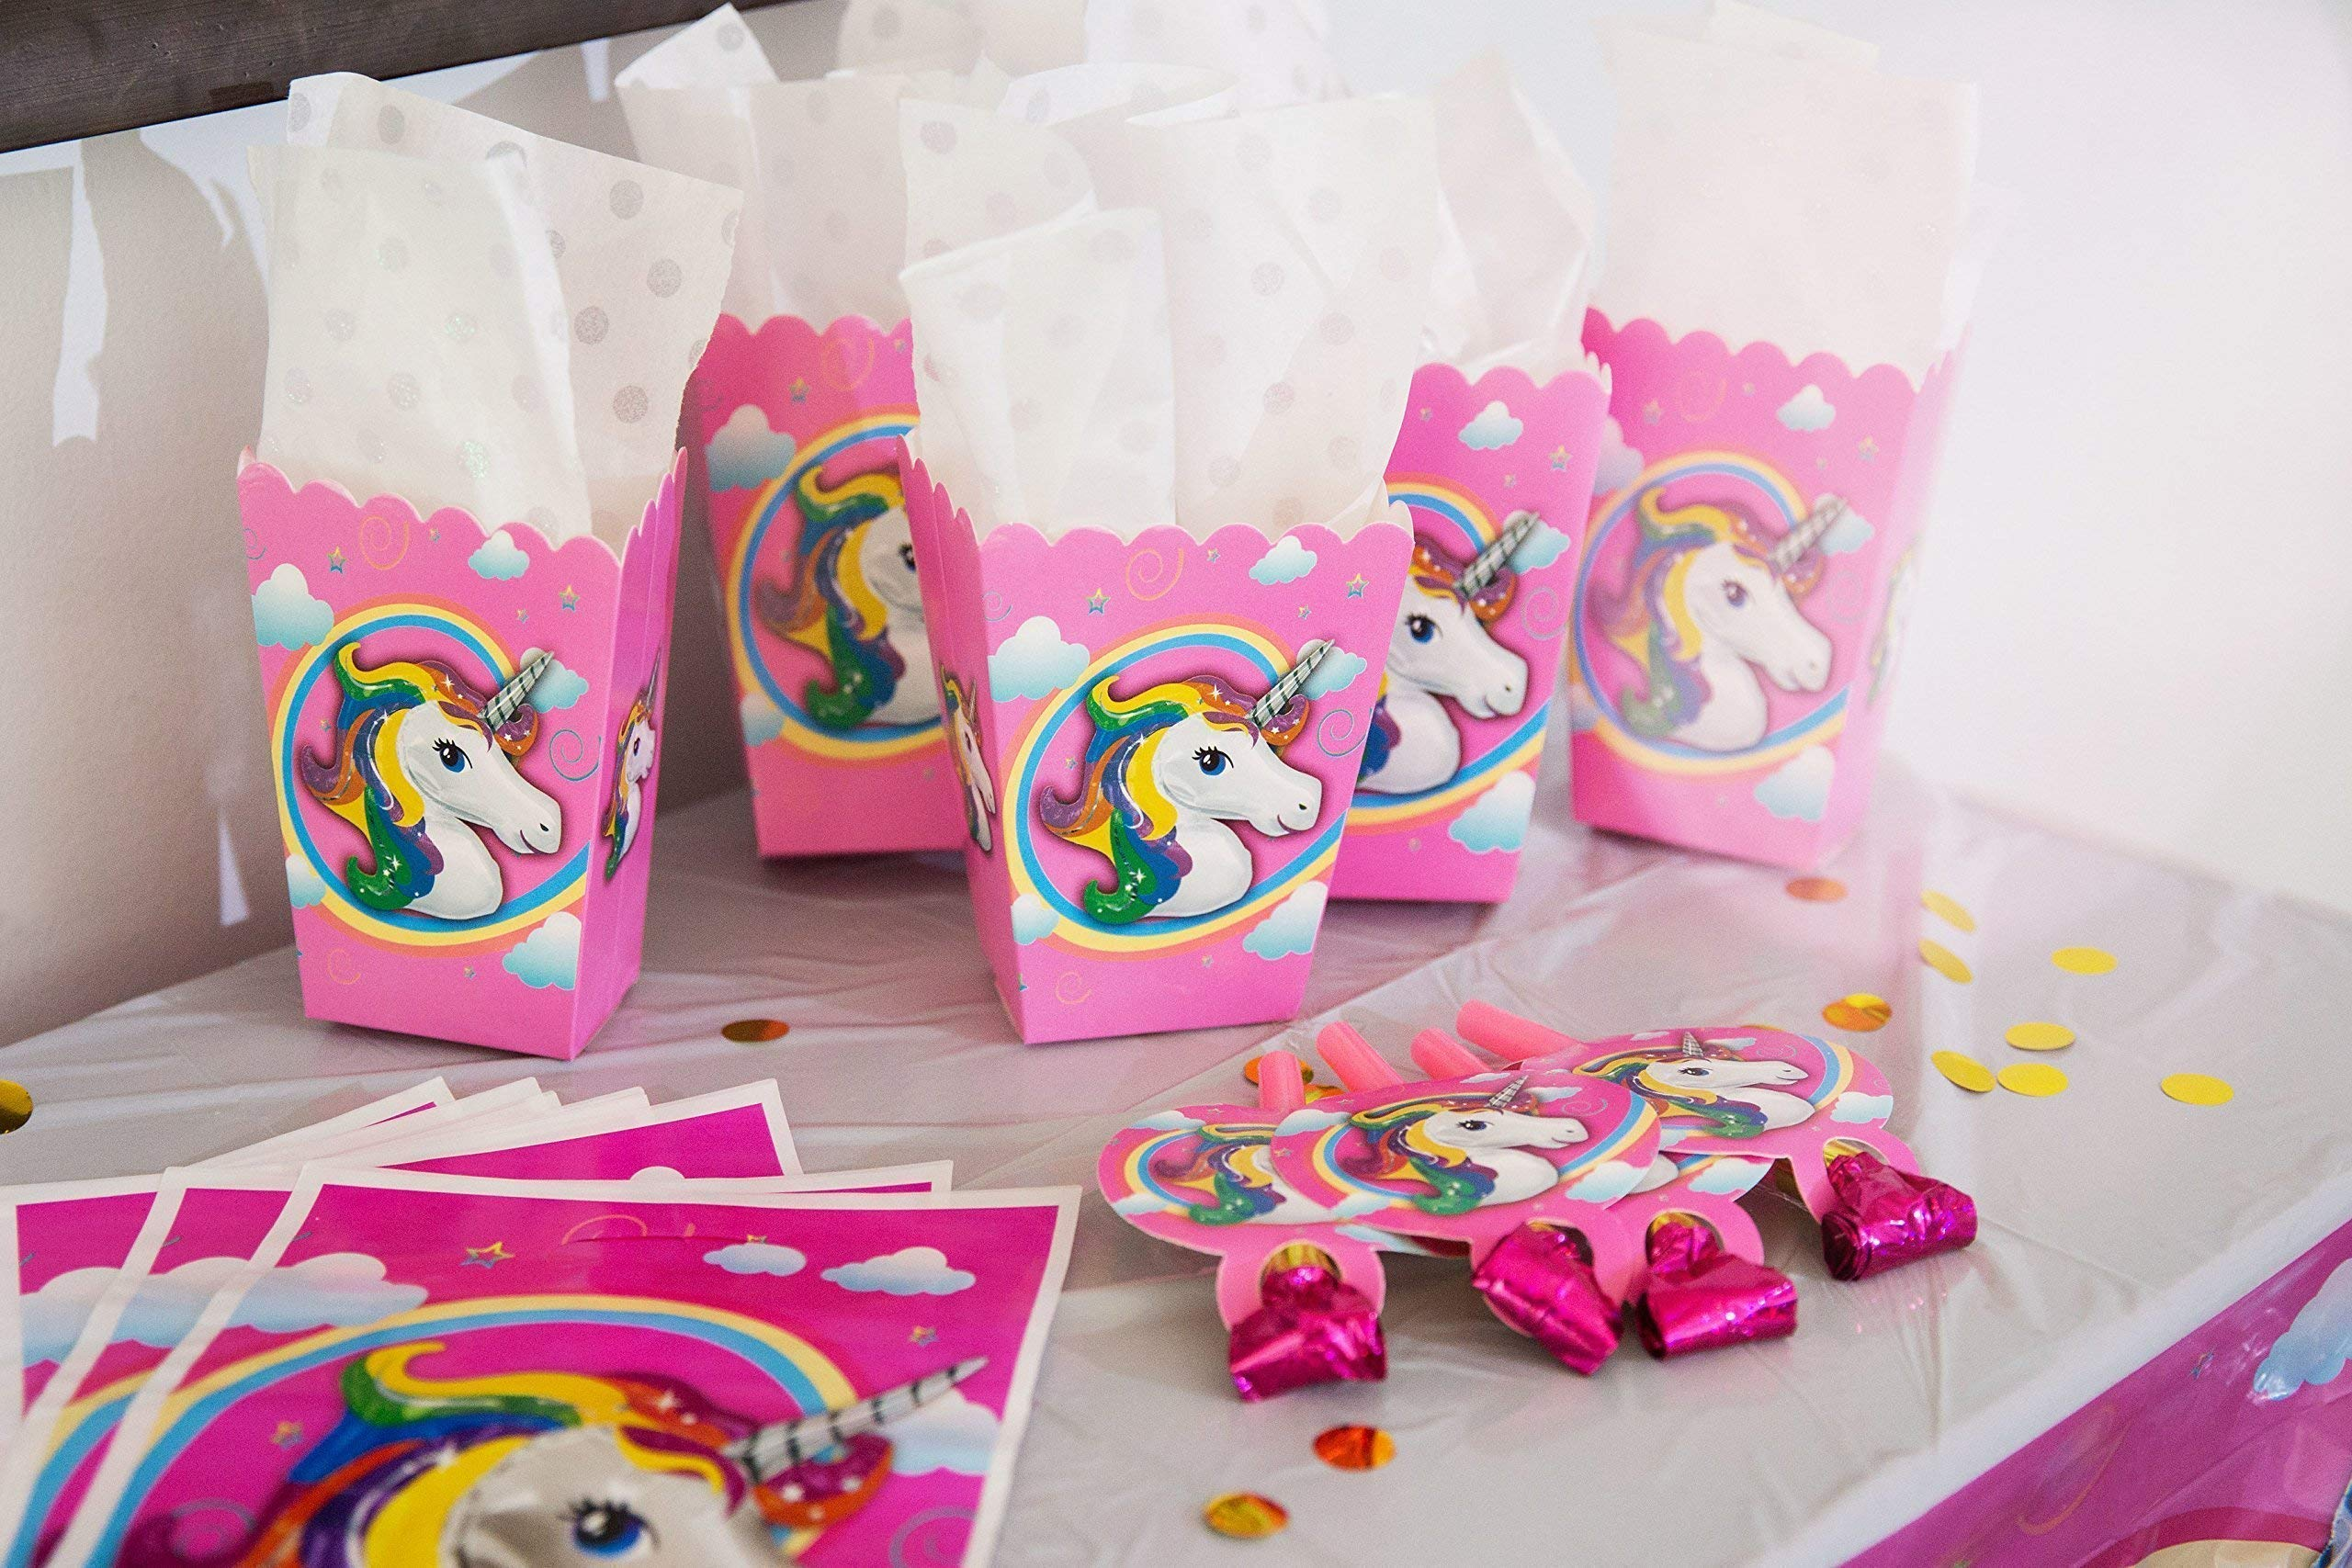 Unicorn Party Supplies- Cake Topper + Cupcake Wrappers | Headband | Party Plates Set for Kids | 32 Balloons | Tattoos… 11